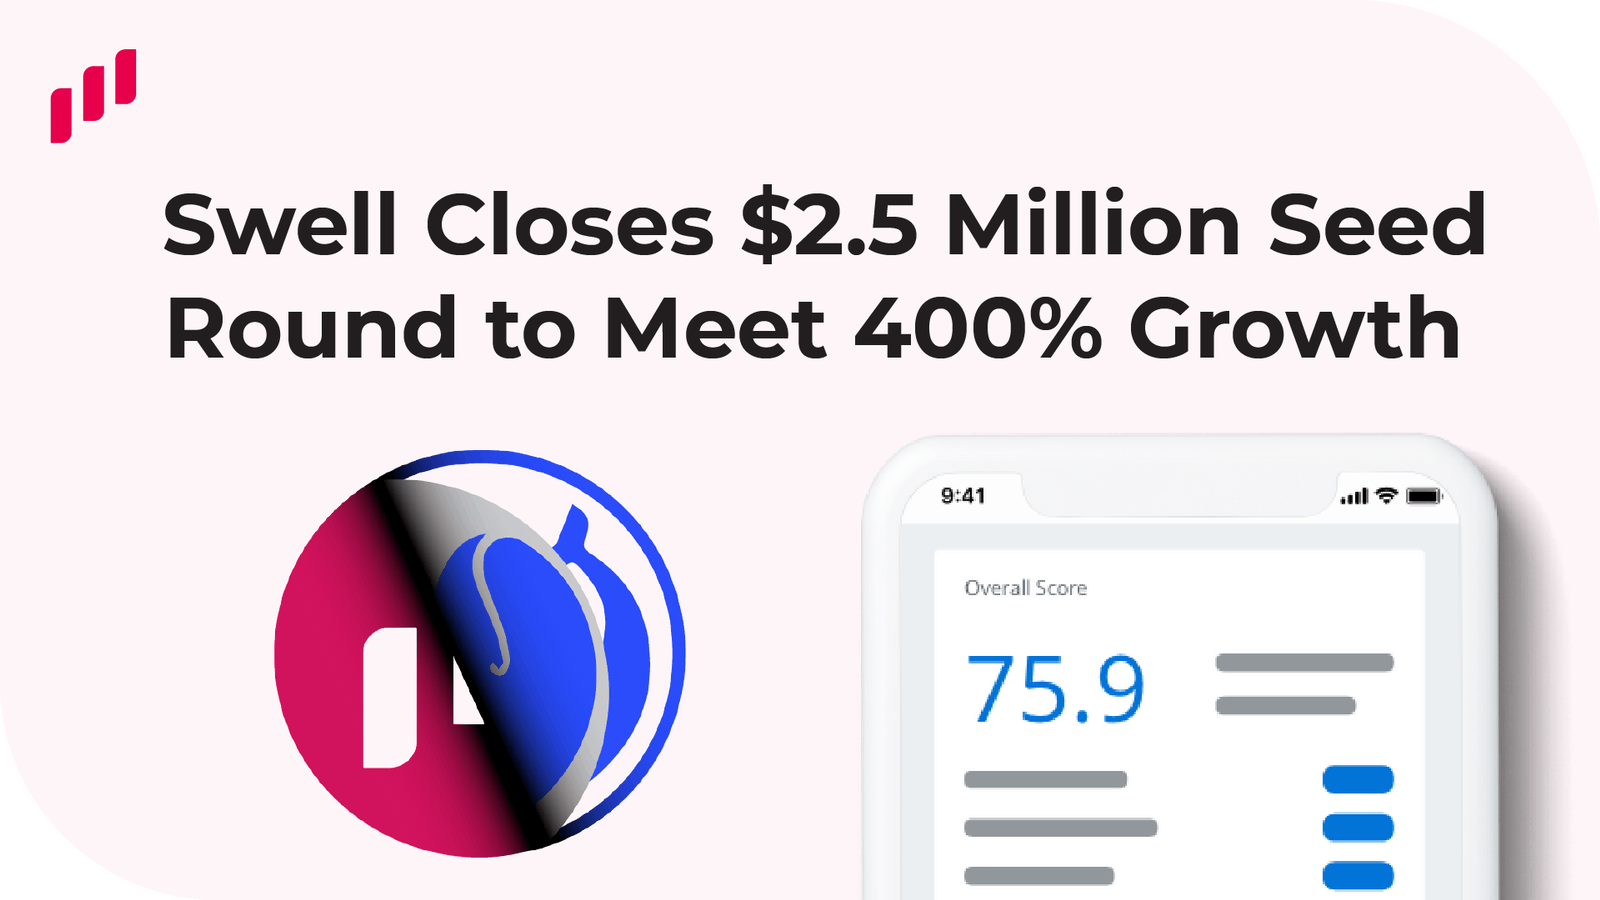 Swell Closes Seed Round